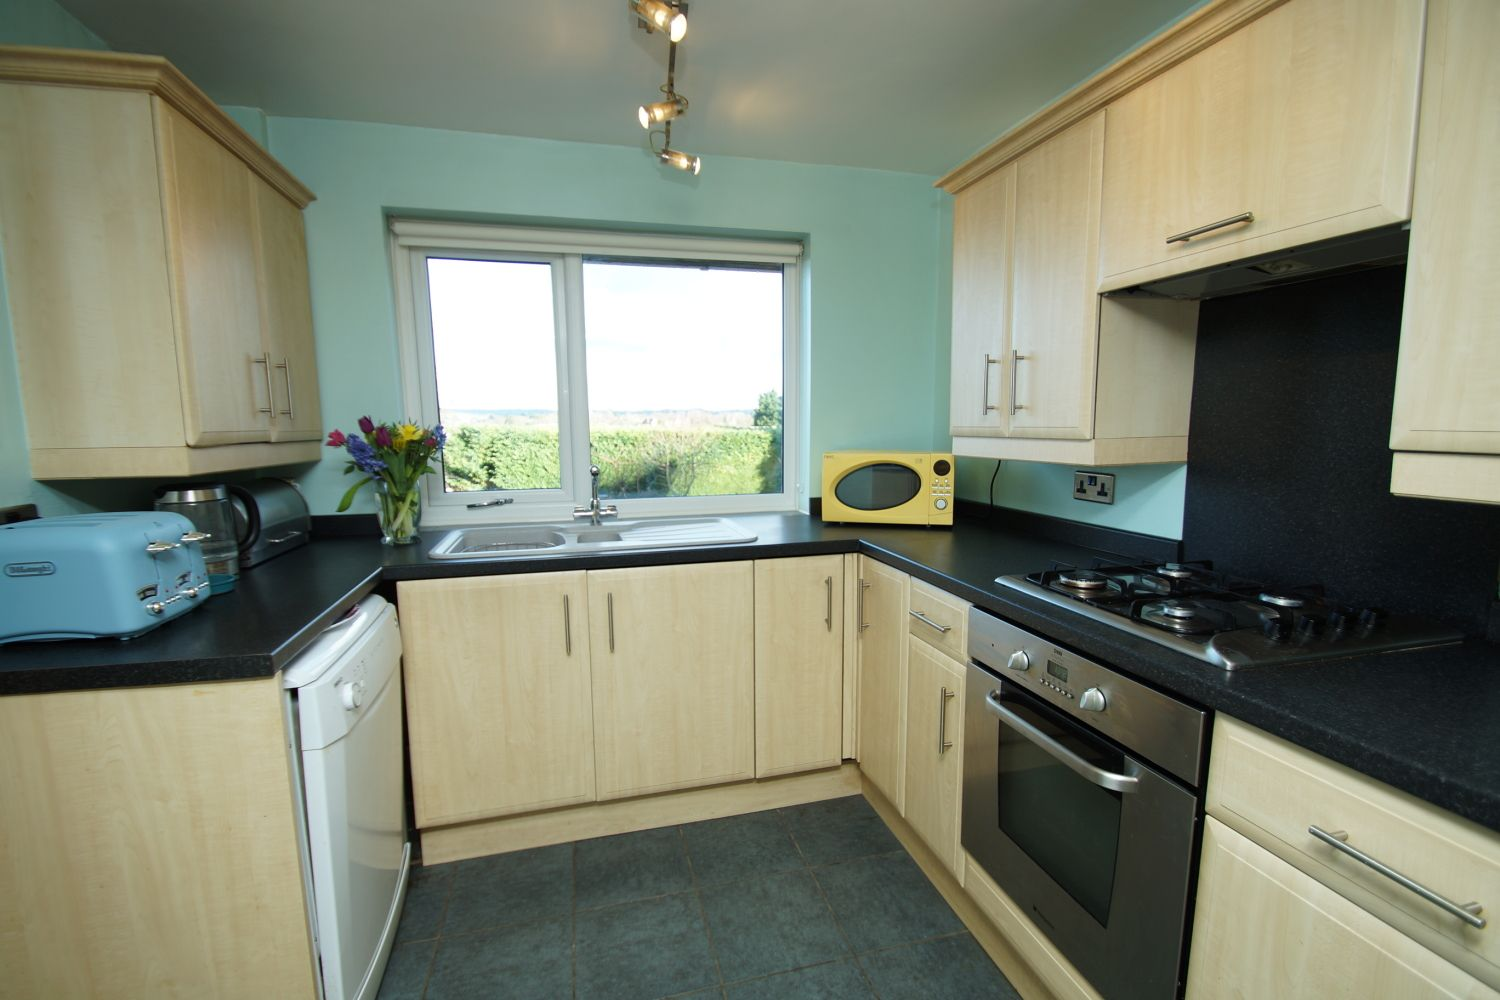 3 bed detached for sale in Fox Lane, Bromsgrove 6